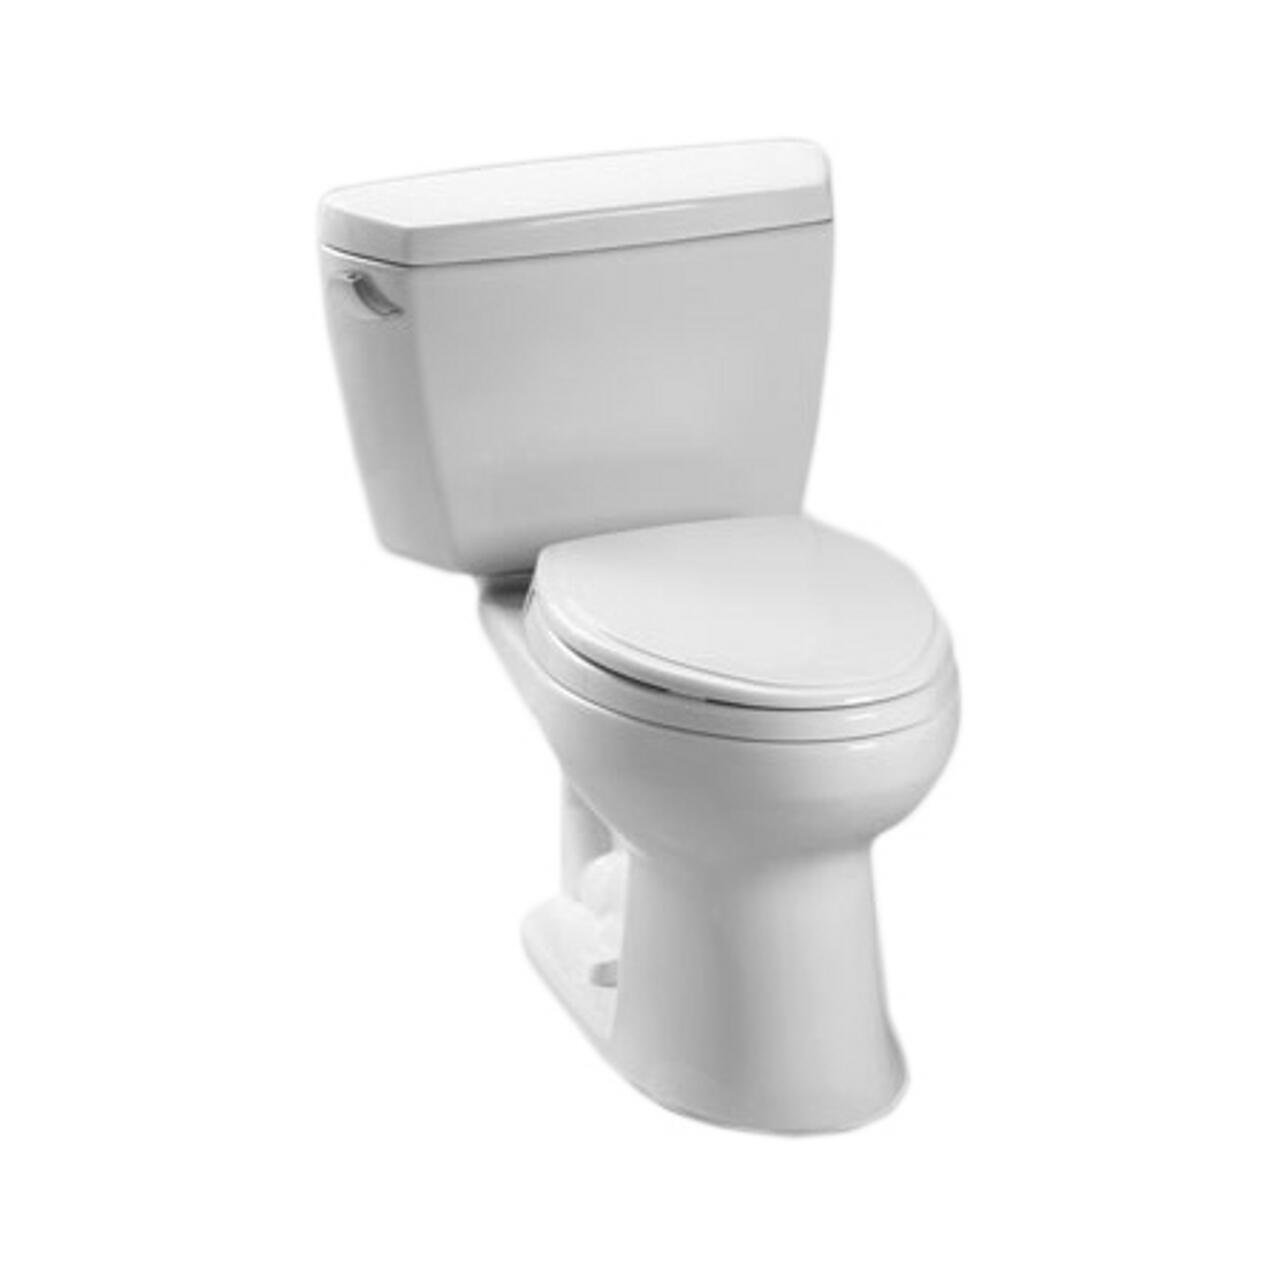 Toto CST744EF.10No.01 Eco Drake Two-Piece Toilet, 1.28-GPF, Cotton